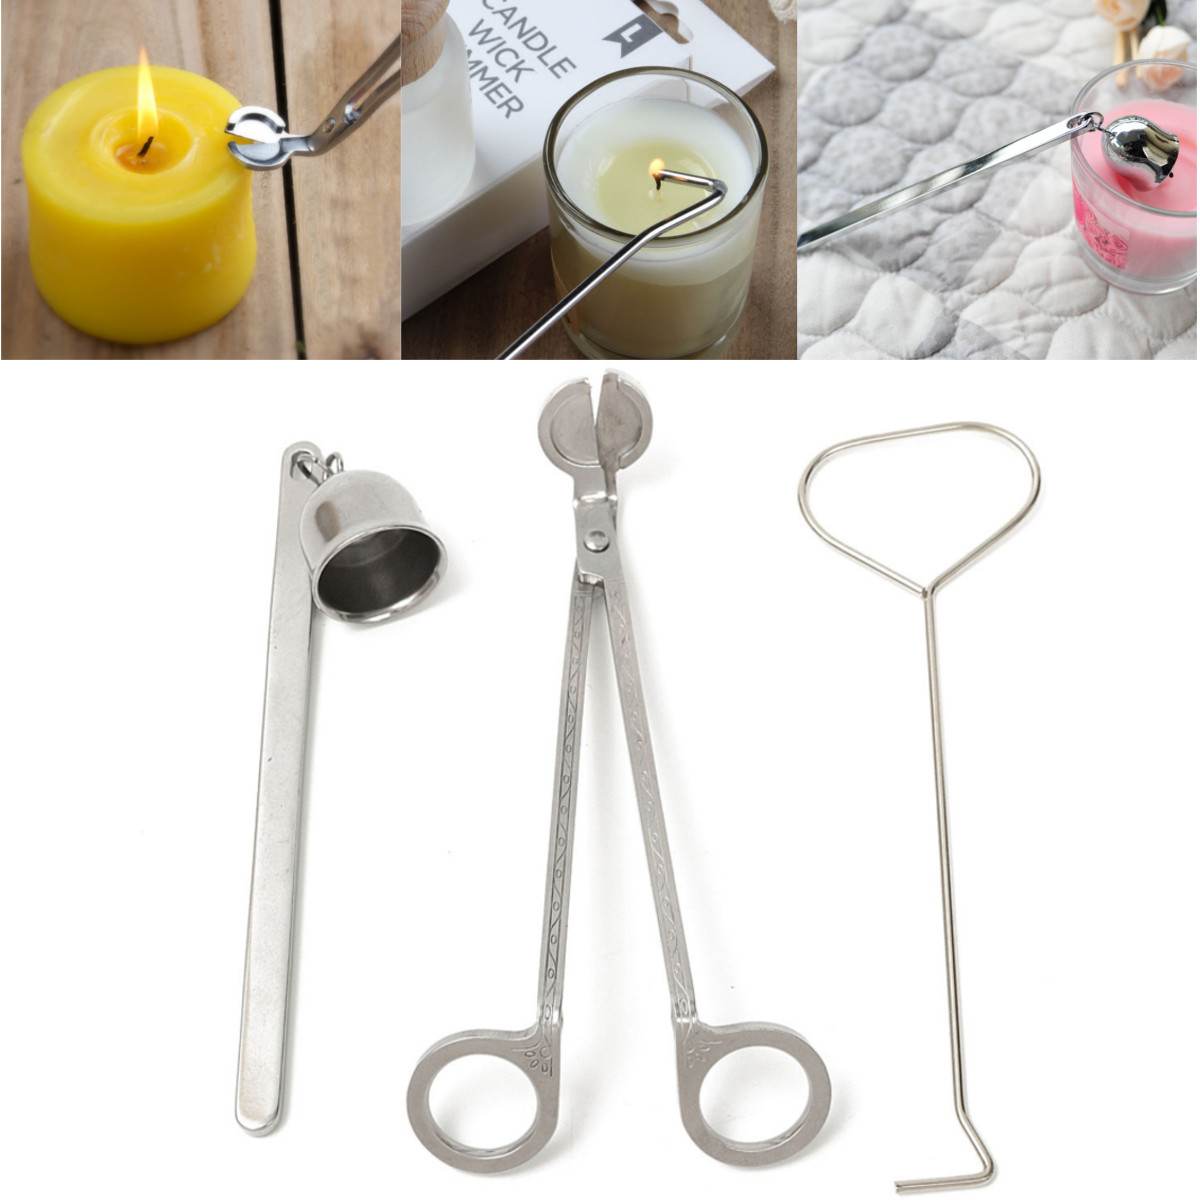 3Pcs Put Out Candle Tool Stainless Steel Scissors Candle Flame Wick Bell Scissors Dipper Snuffer